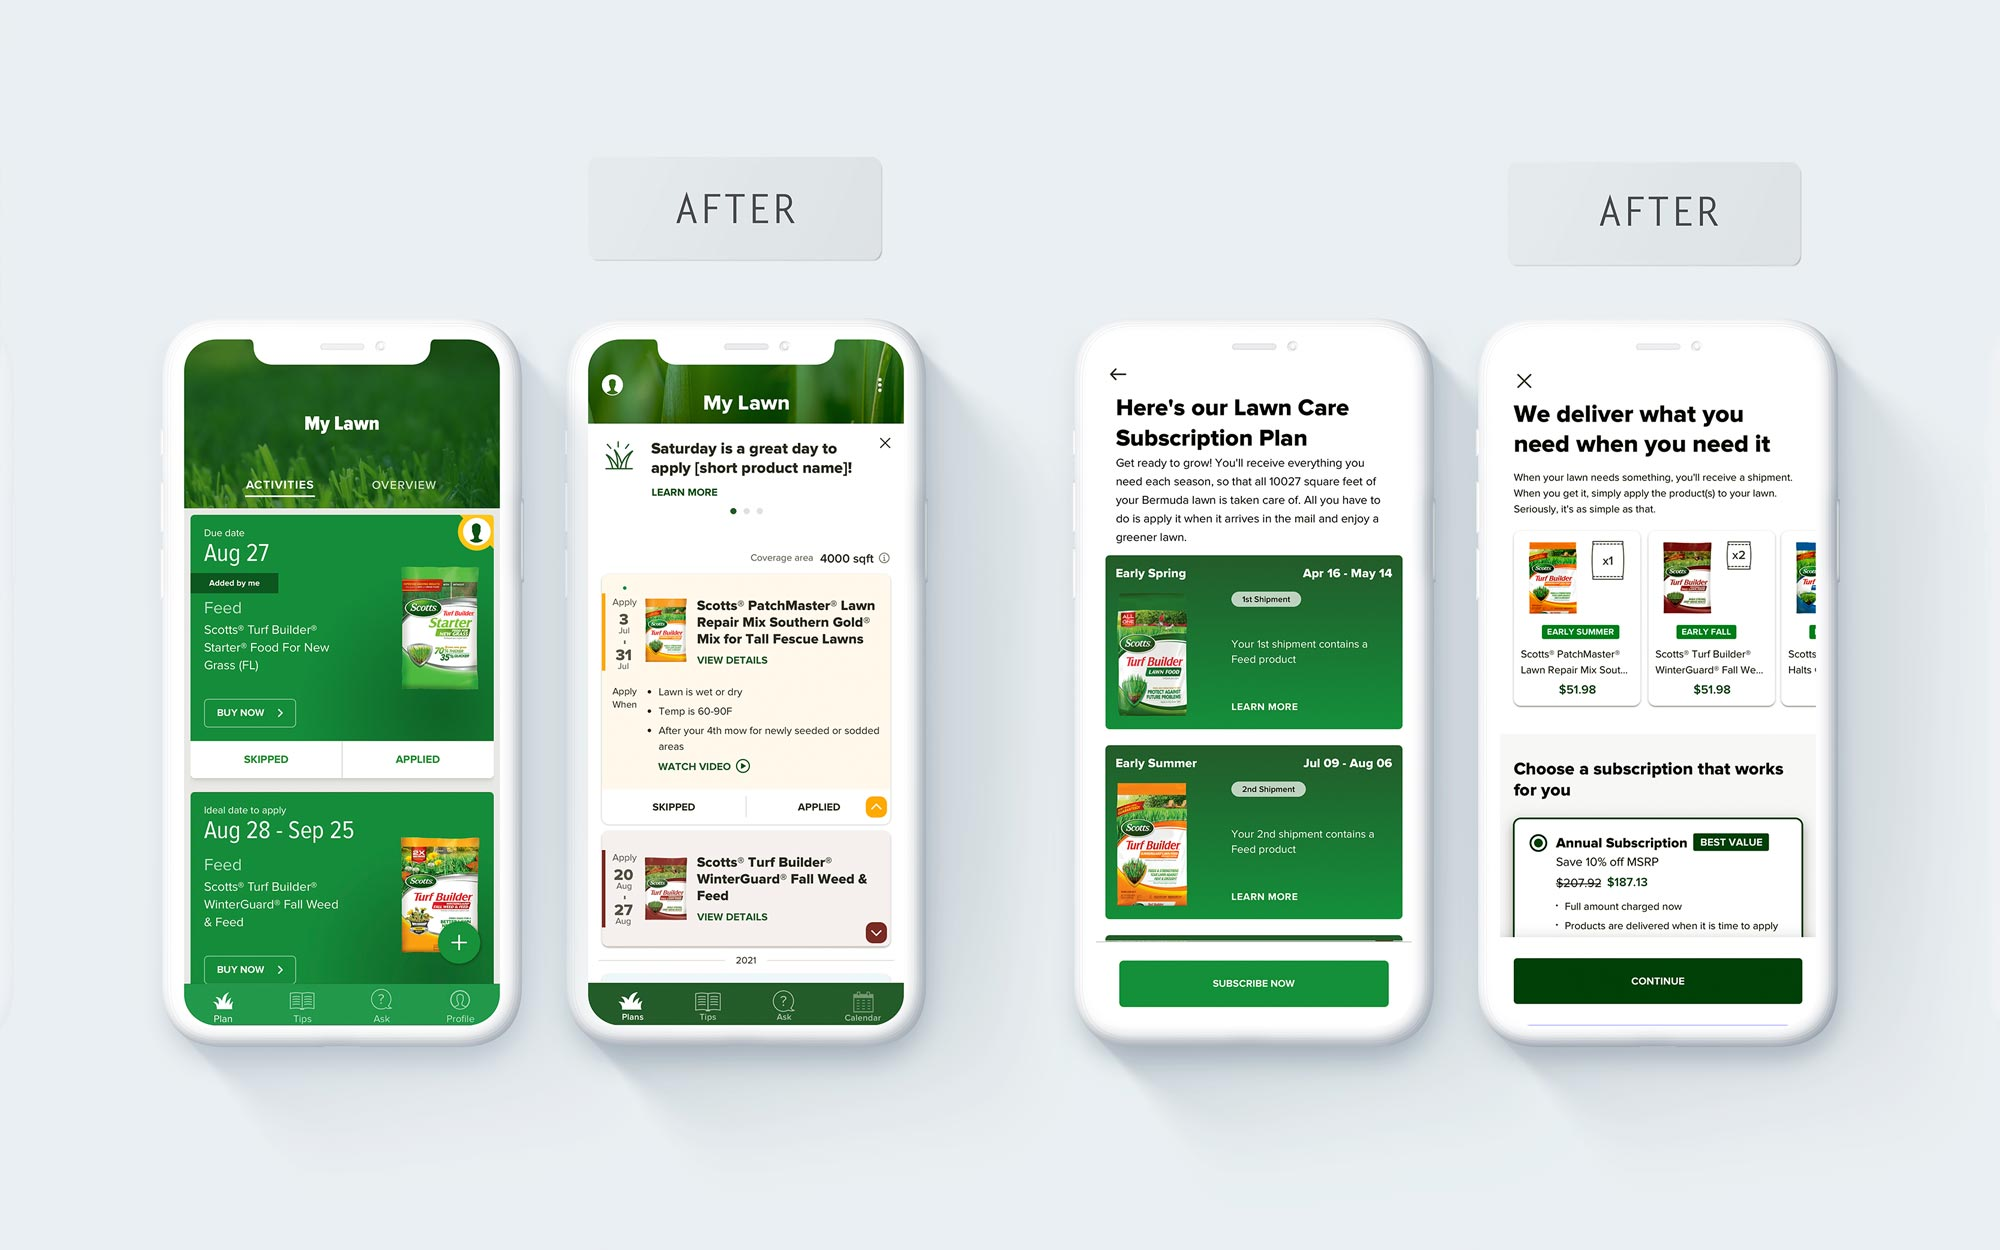 A before-and-after comparison for the home screen and the subscription screen.